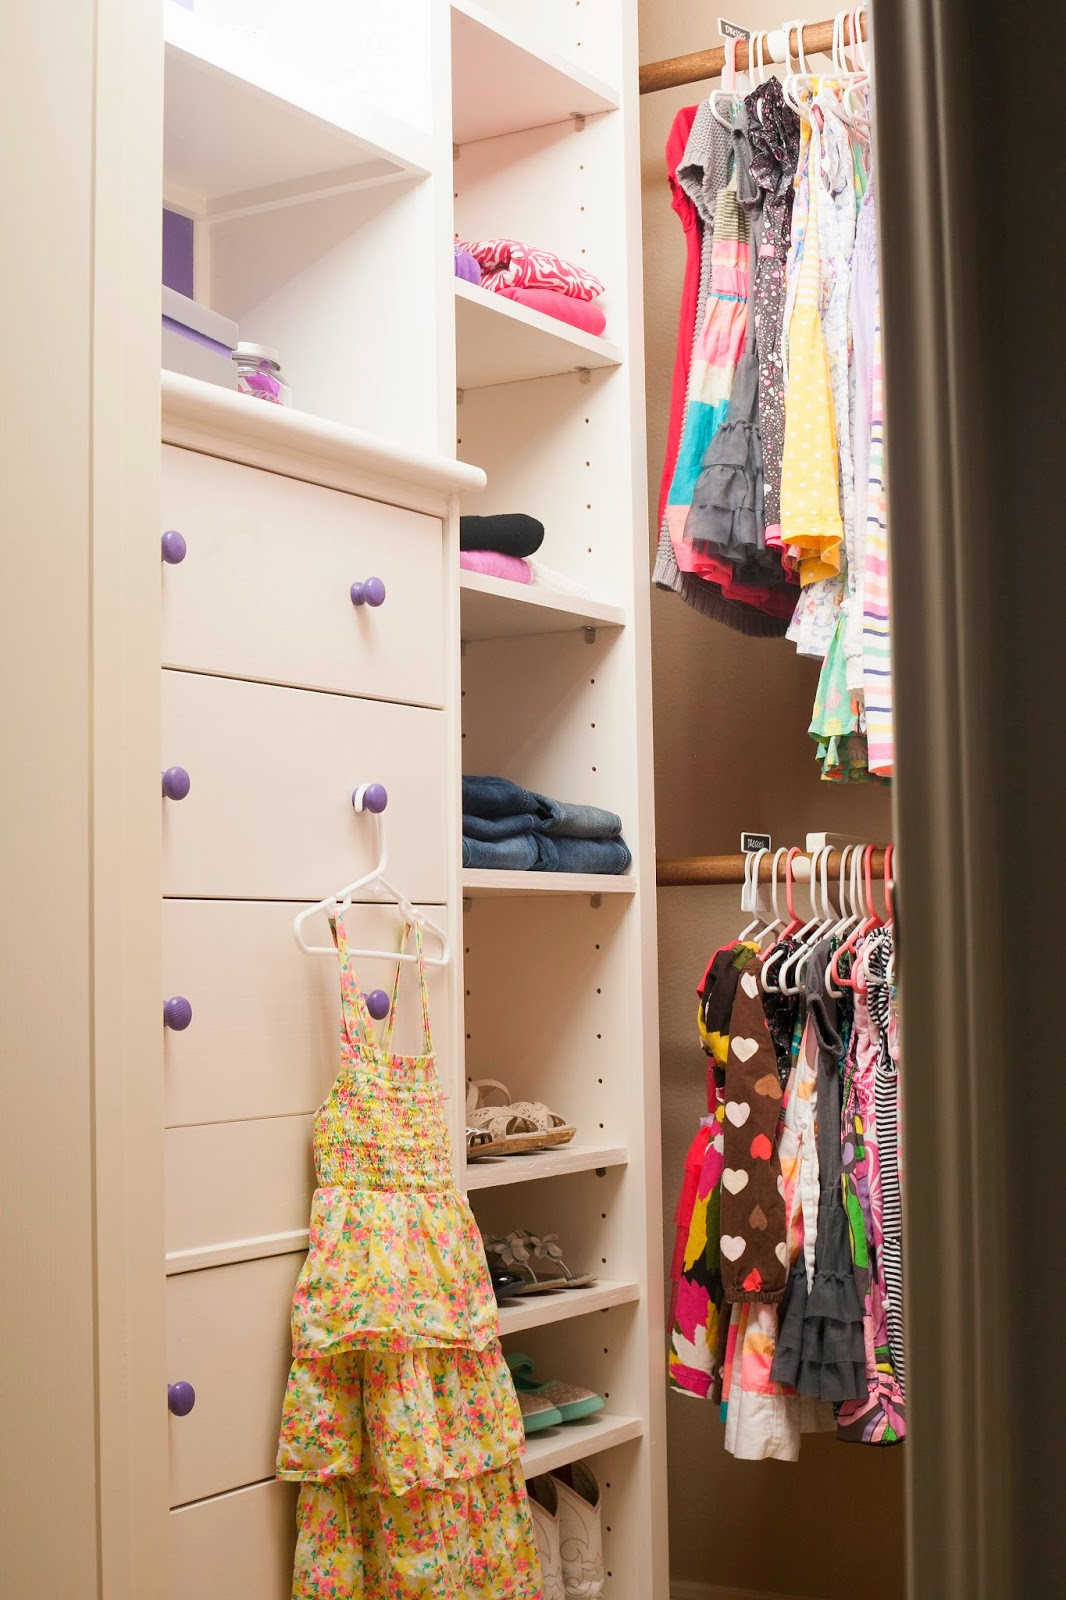 Best ideas about DIY Closet Kit . Save or Pin MyBellaBug Girls Bedroom DIY Closet System Reveal Now.